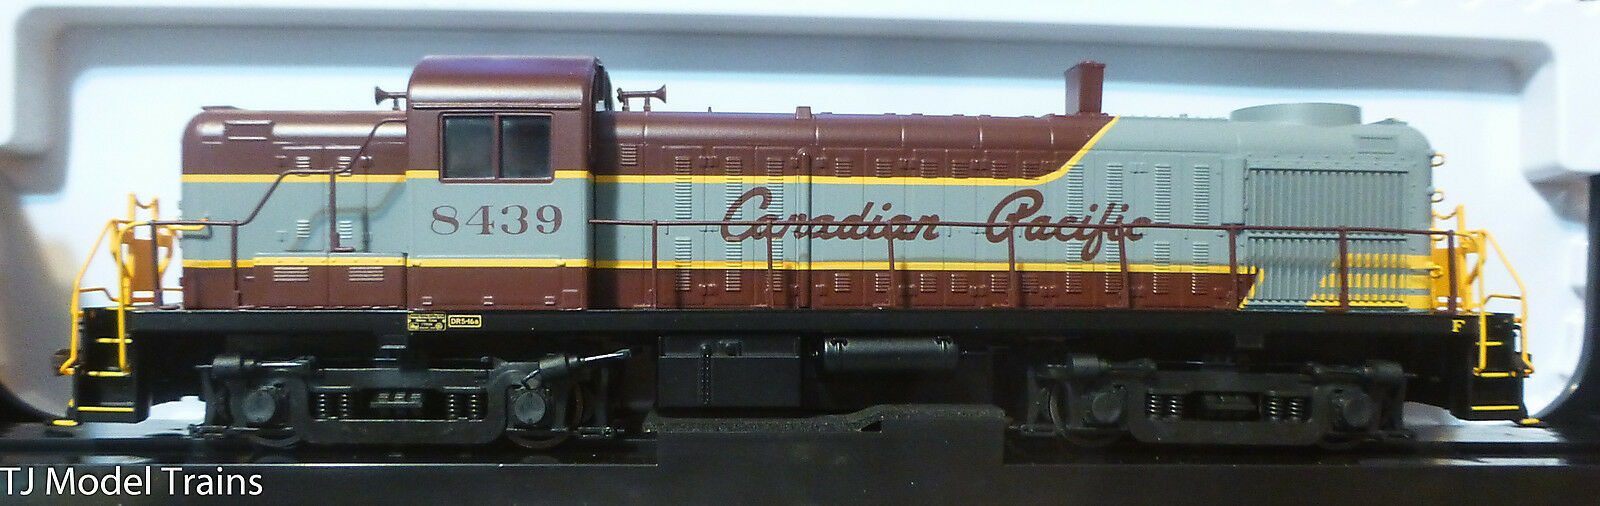 Atlas HO  10001953  Rd  8439  Canadian Pacific RS-3 Locomotive  DCC